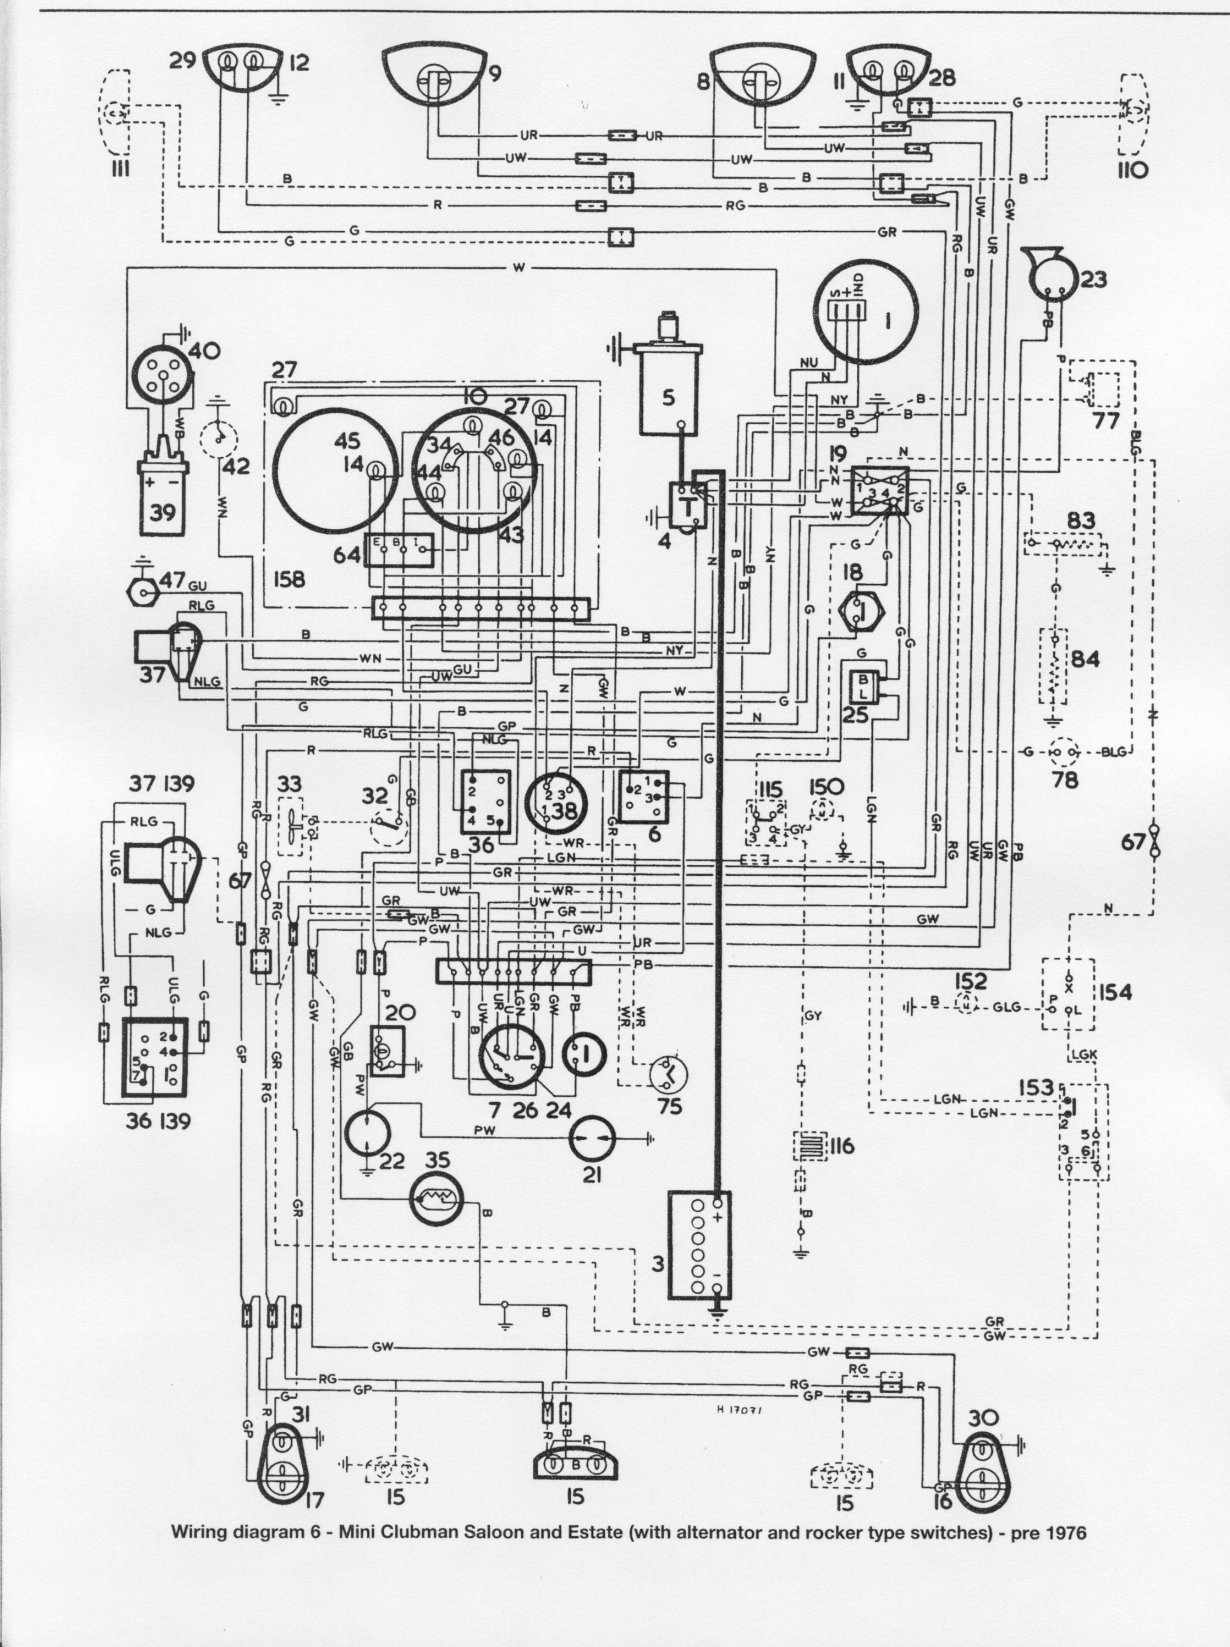 mini car manuals wiring diagrams pdf fault codes rh automotive manuals net classic mini ignition coil wiring diagram classic mini wiring diagram colour